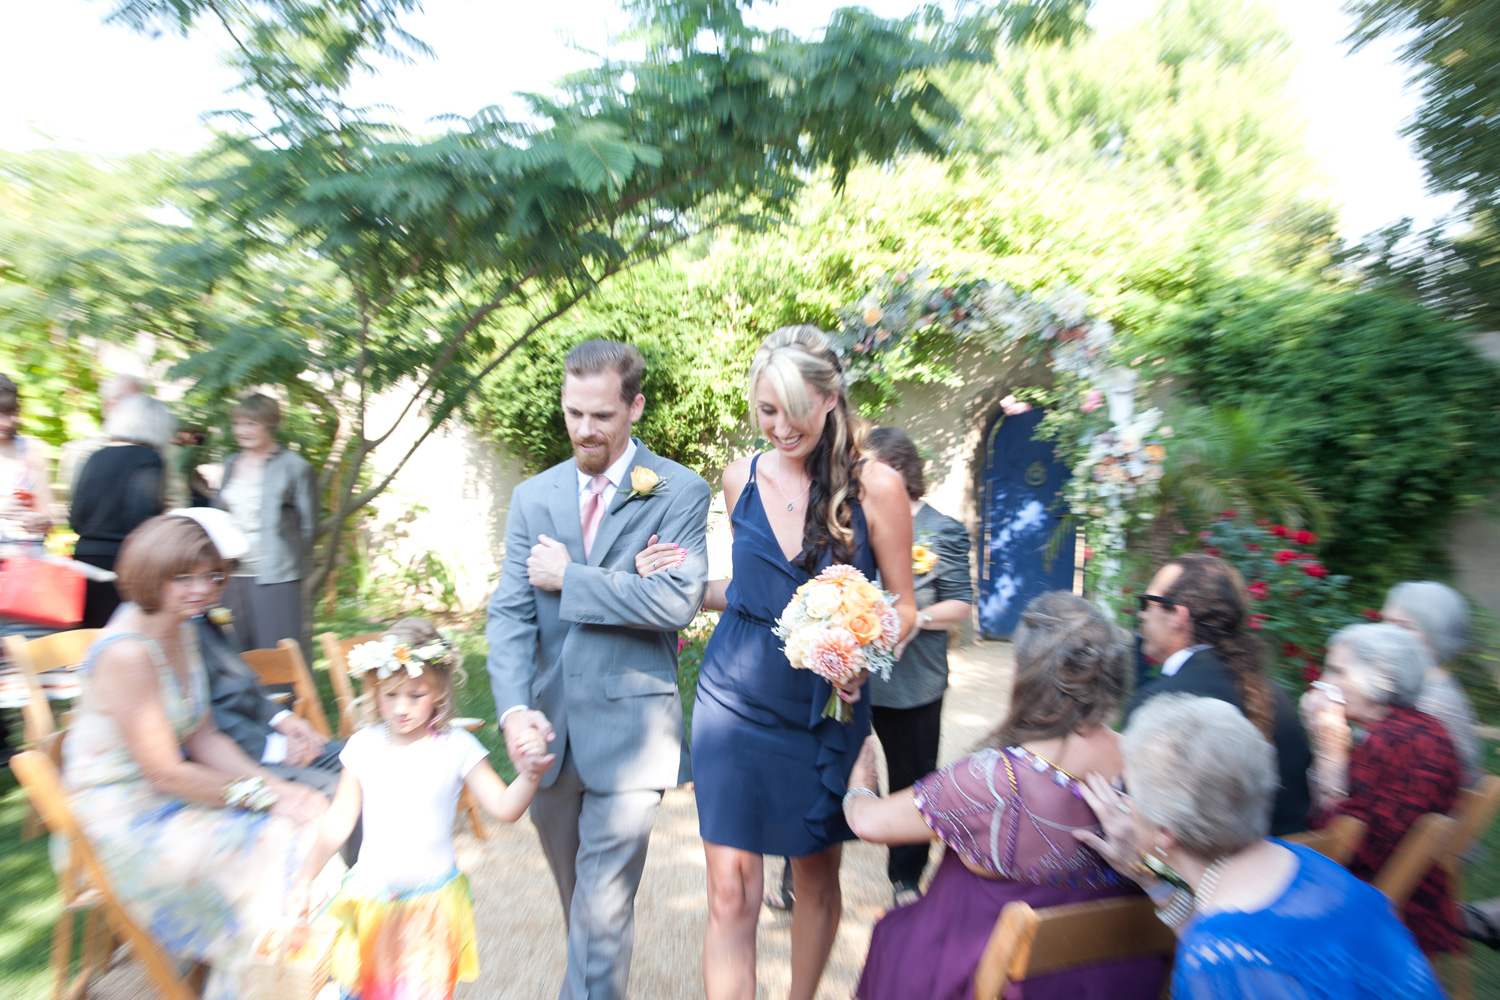 The wedding party recessional